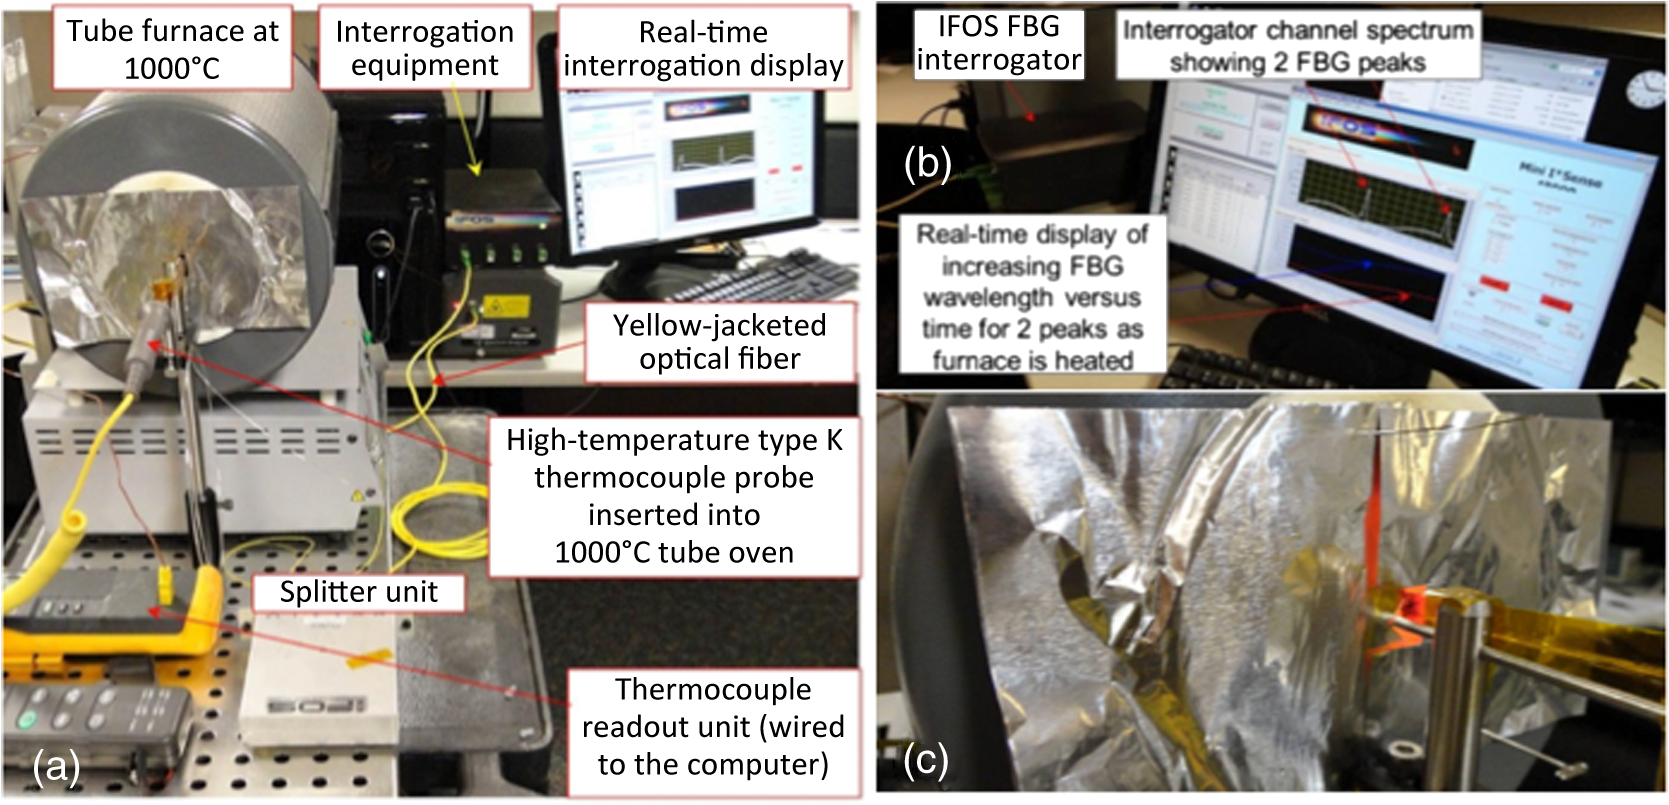 Fiber Optic Temperature Profiling For Thermal Protection System Heat Viking C 1000b Wiring Diagram B Zoom Of Fbg Interrogation Readout Showing Real Time Tracking Wavelengths One End Furnace At 1000c With Reference Thermocouple Probe And